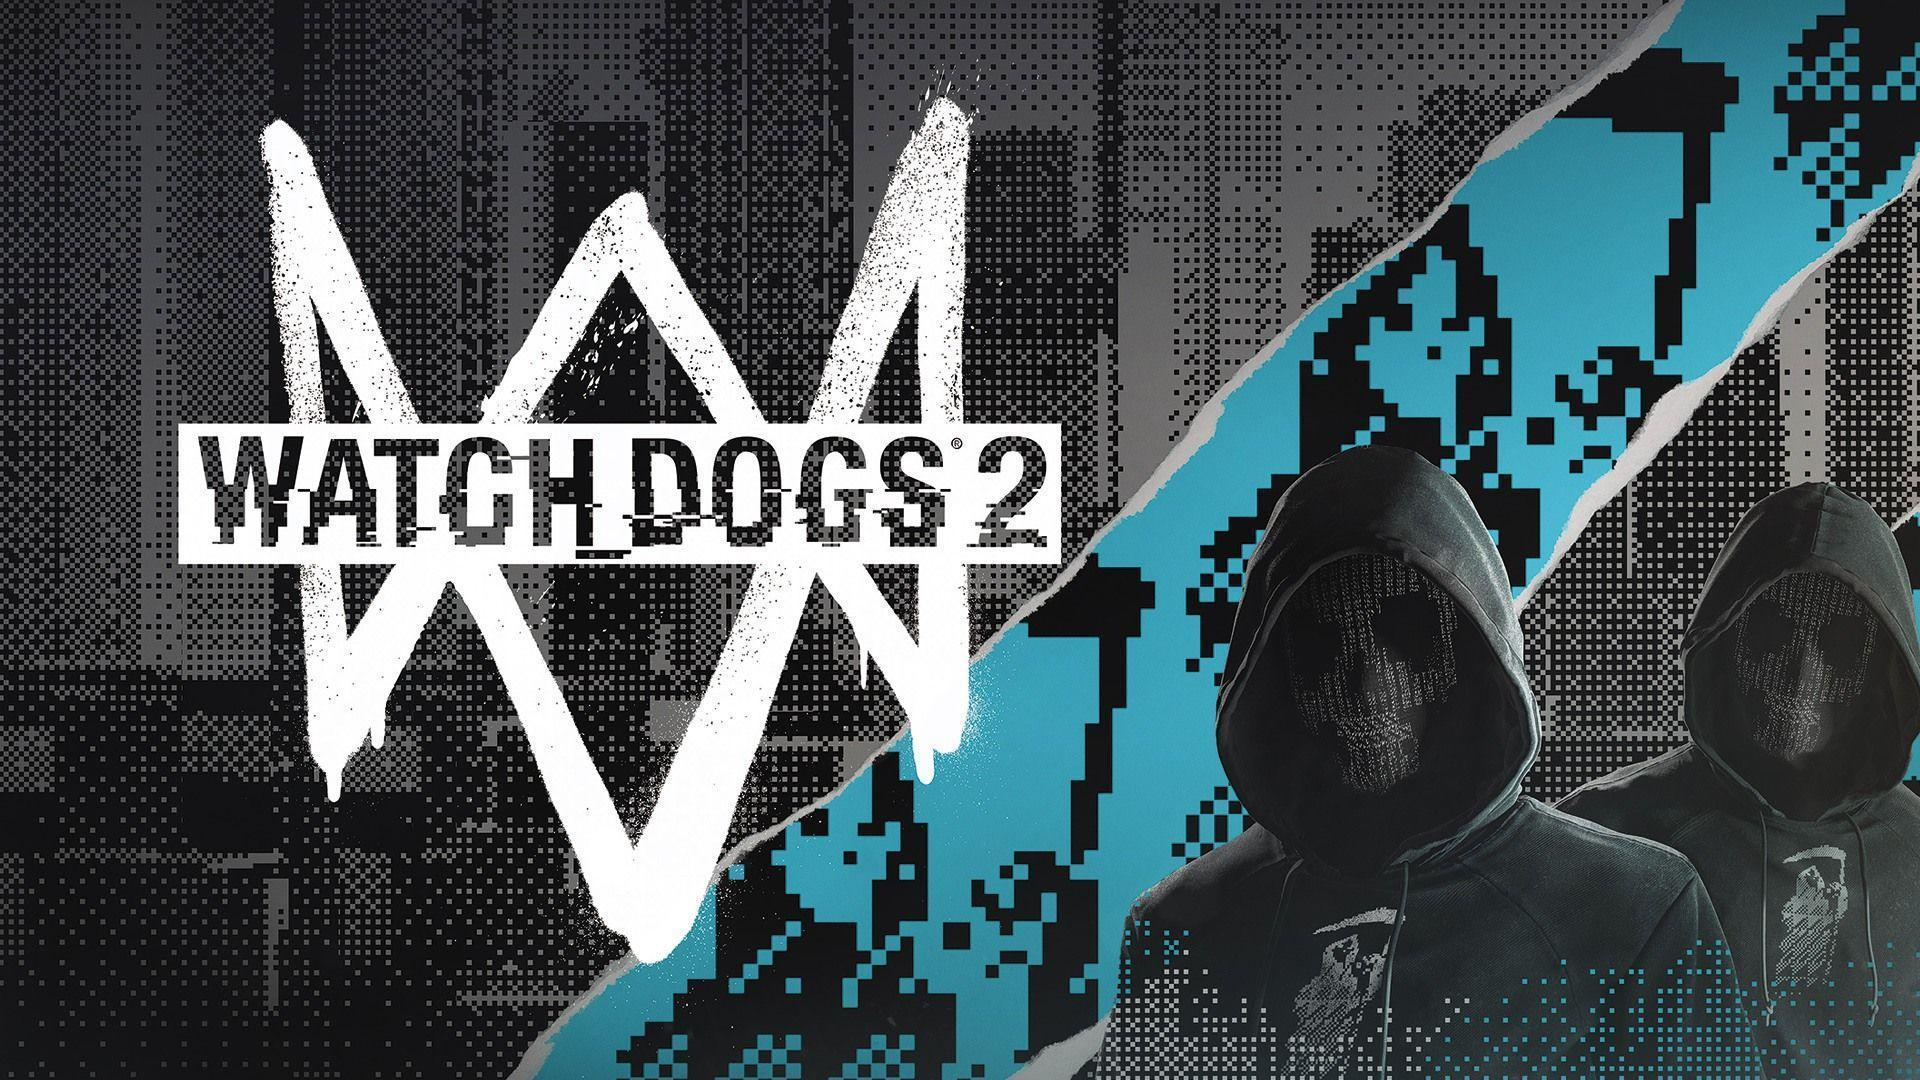 Watch Dogs 2 Wallpapers - Wallpaper Cave